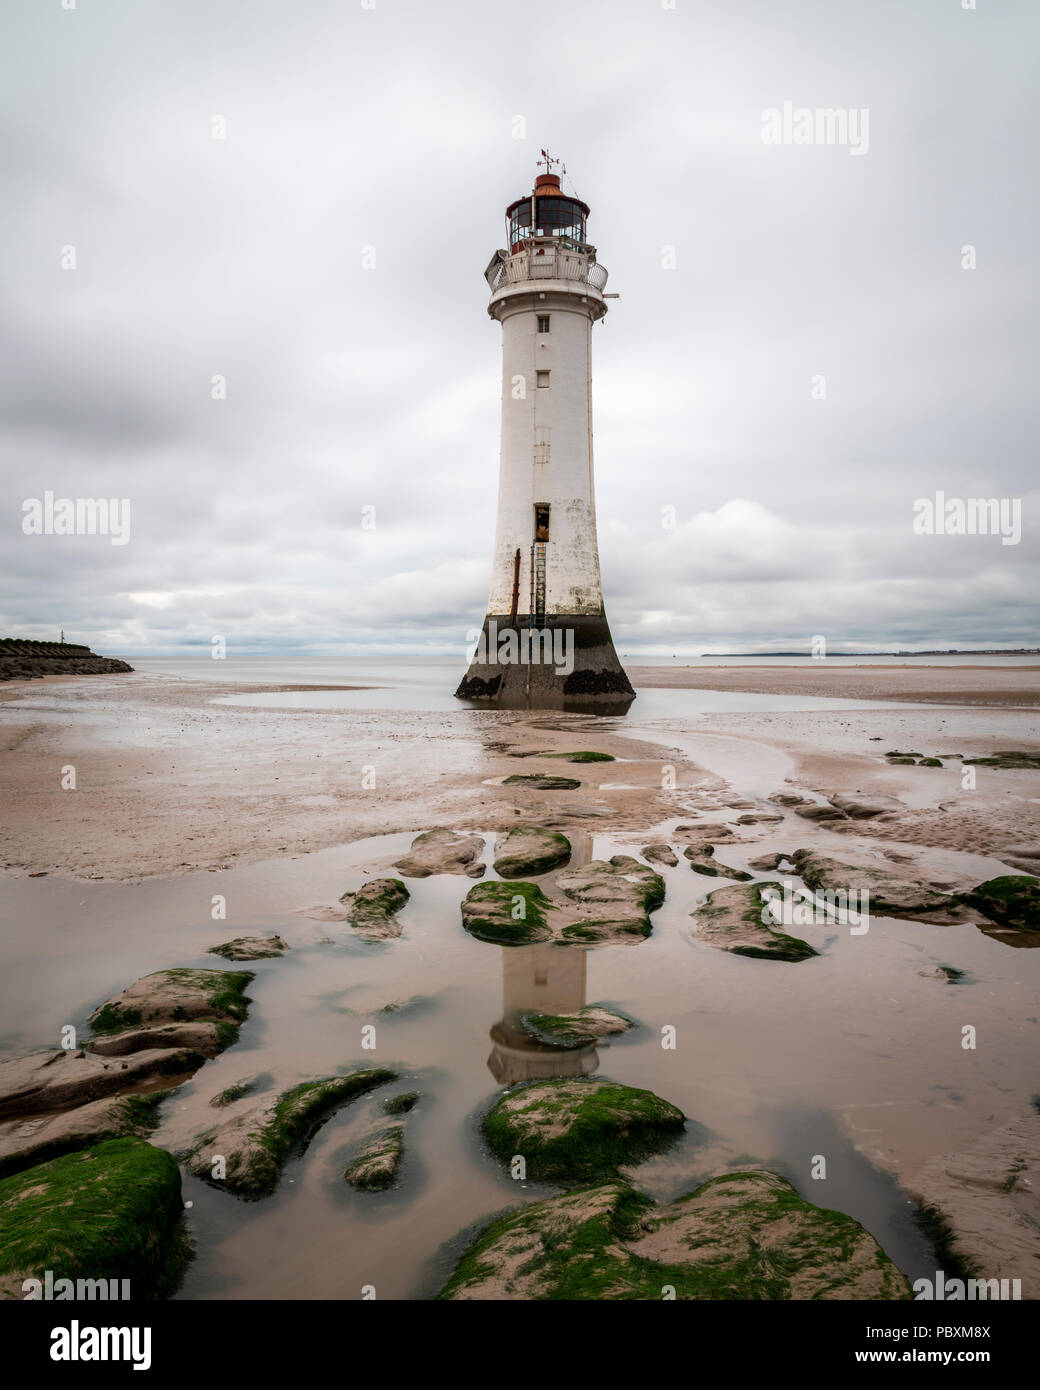 Fort perch lighthouse, New Brighton, Liverpool Bay, Merseyside, England, UK, Europe - Stock Image